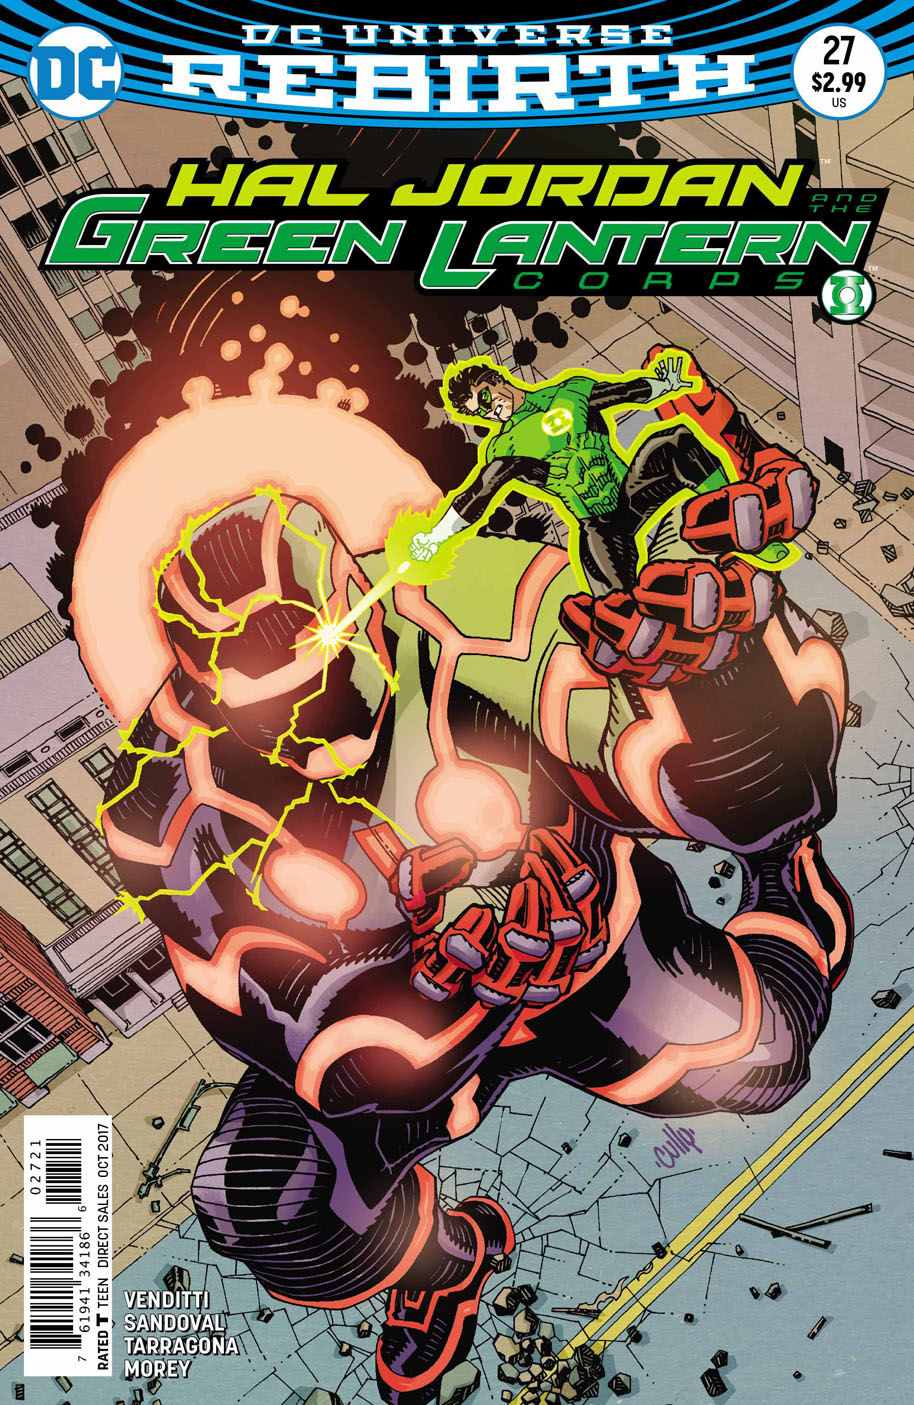 Hal Jordan and the Green Lantern Corps 27 open order variant cover